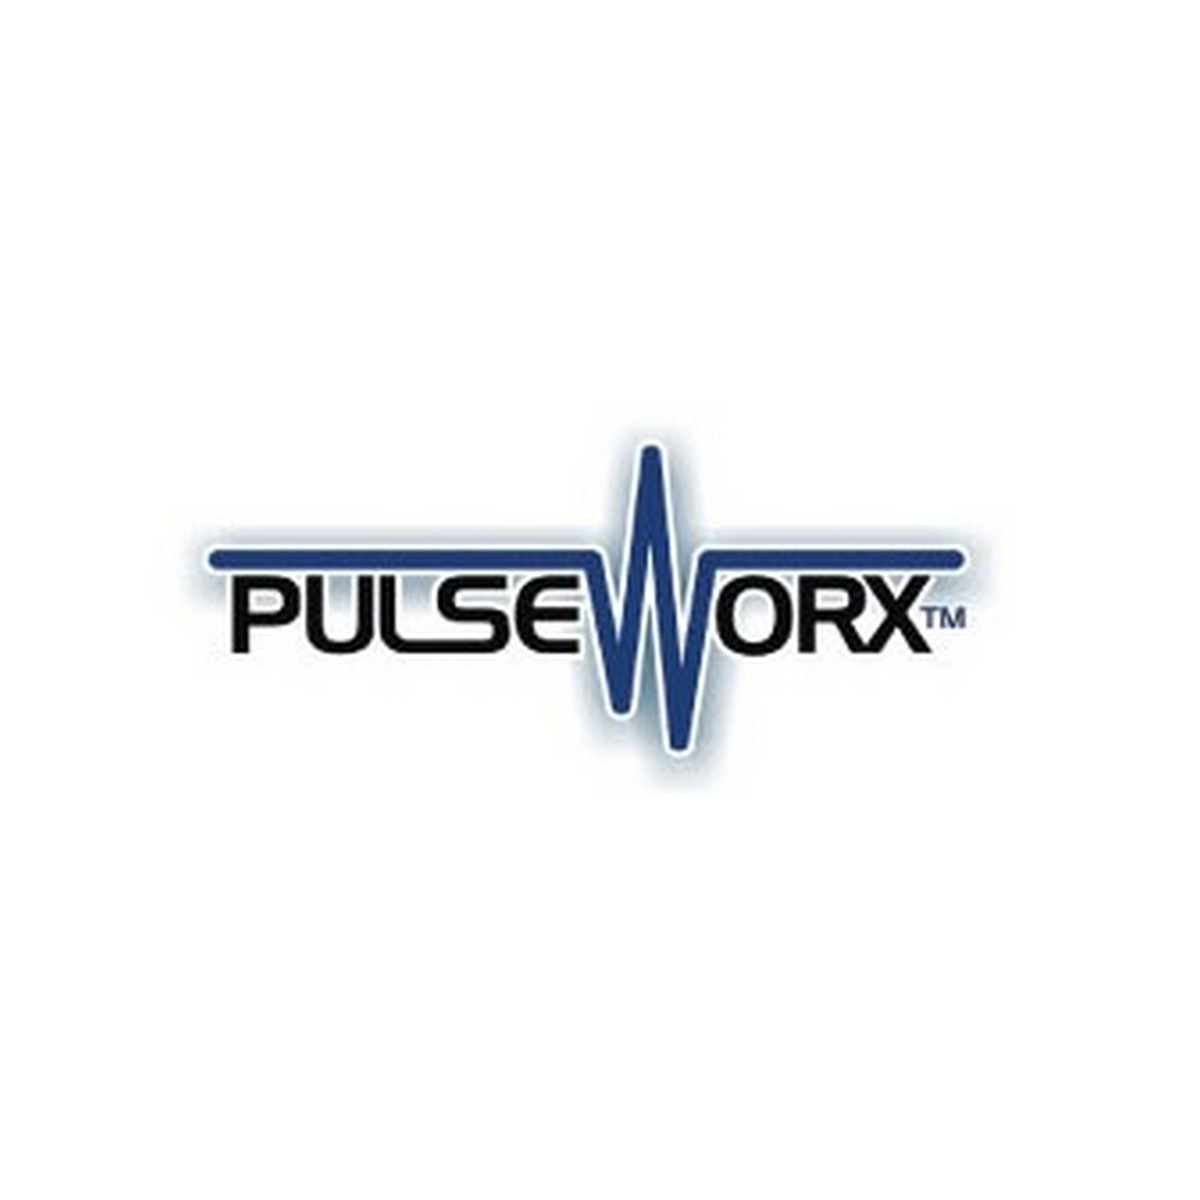 Pulseworx Complete Button Kit for KPCW-7 and KPCD-7